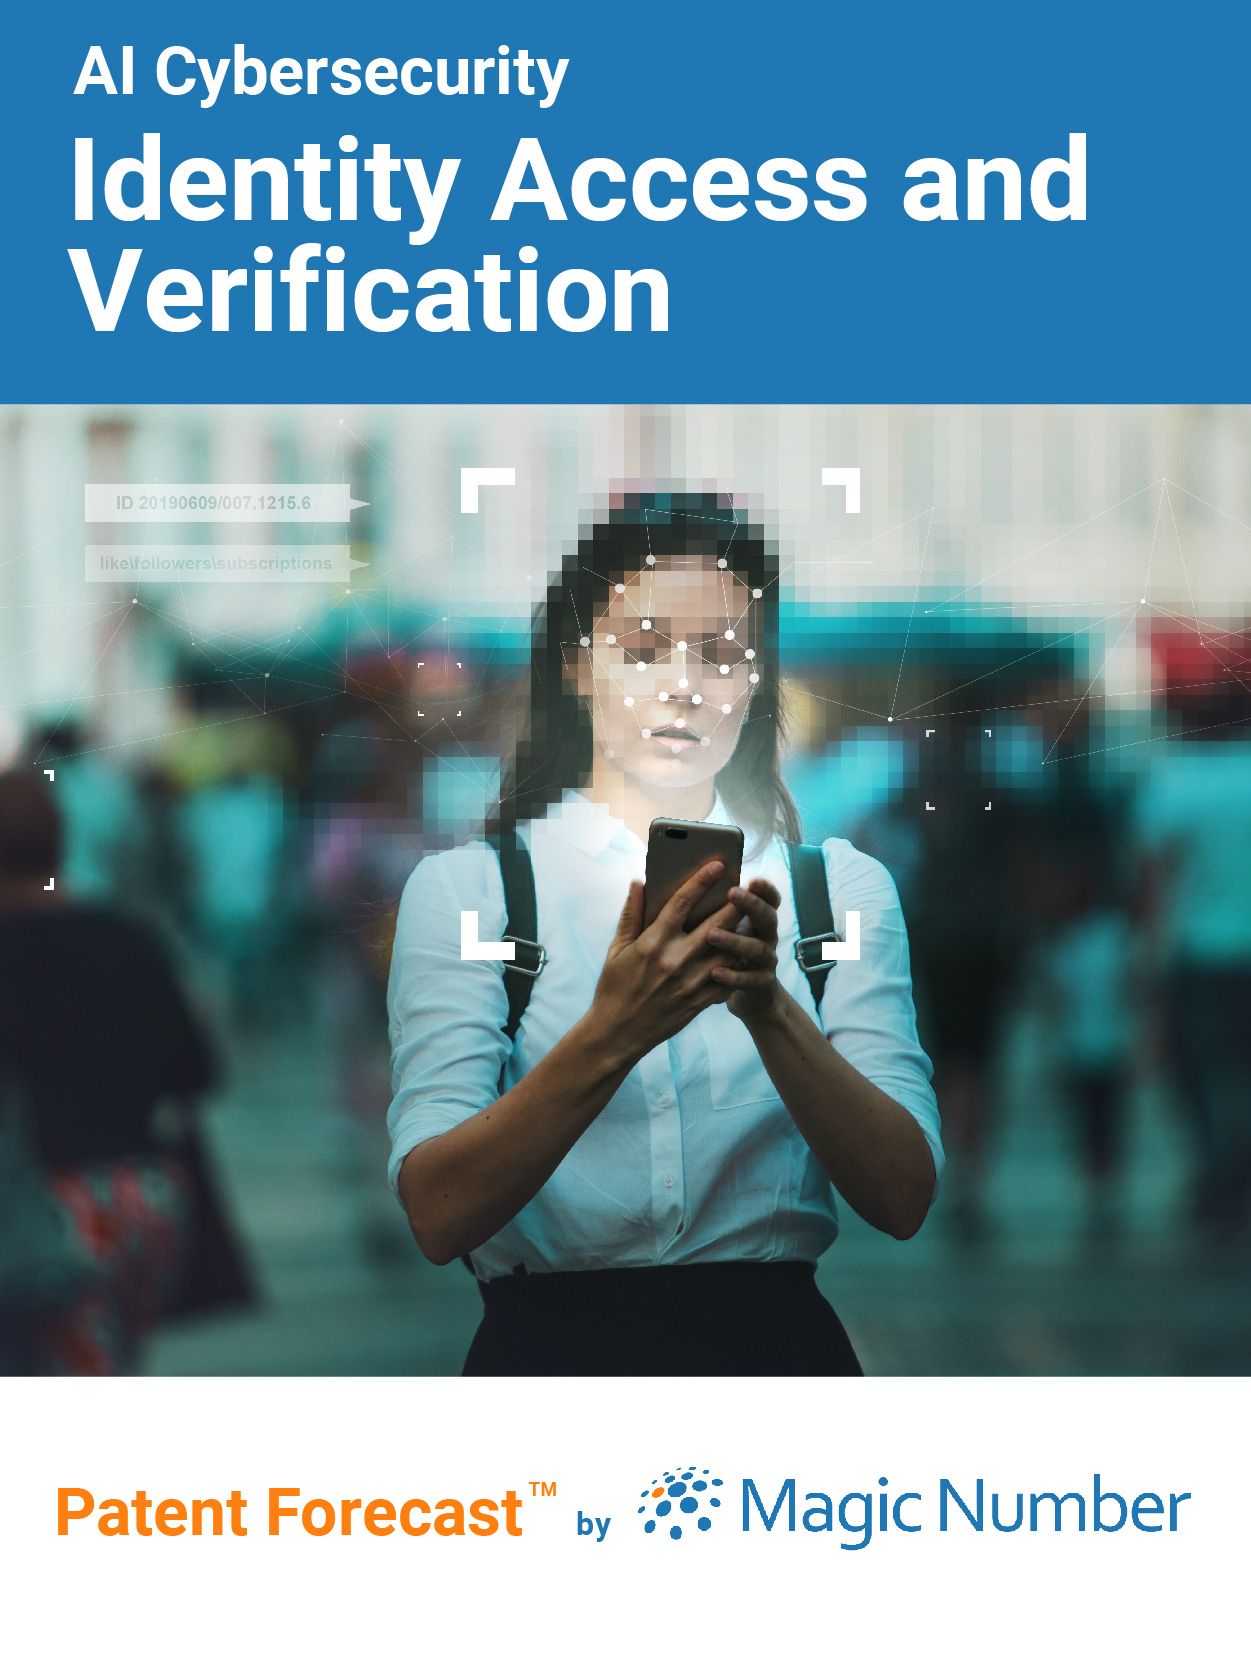 AI Cybersecurity: Identity and Access Verification